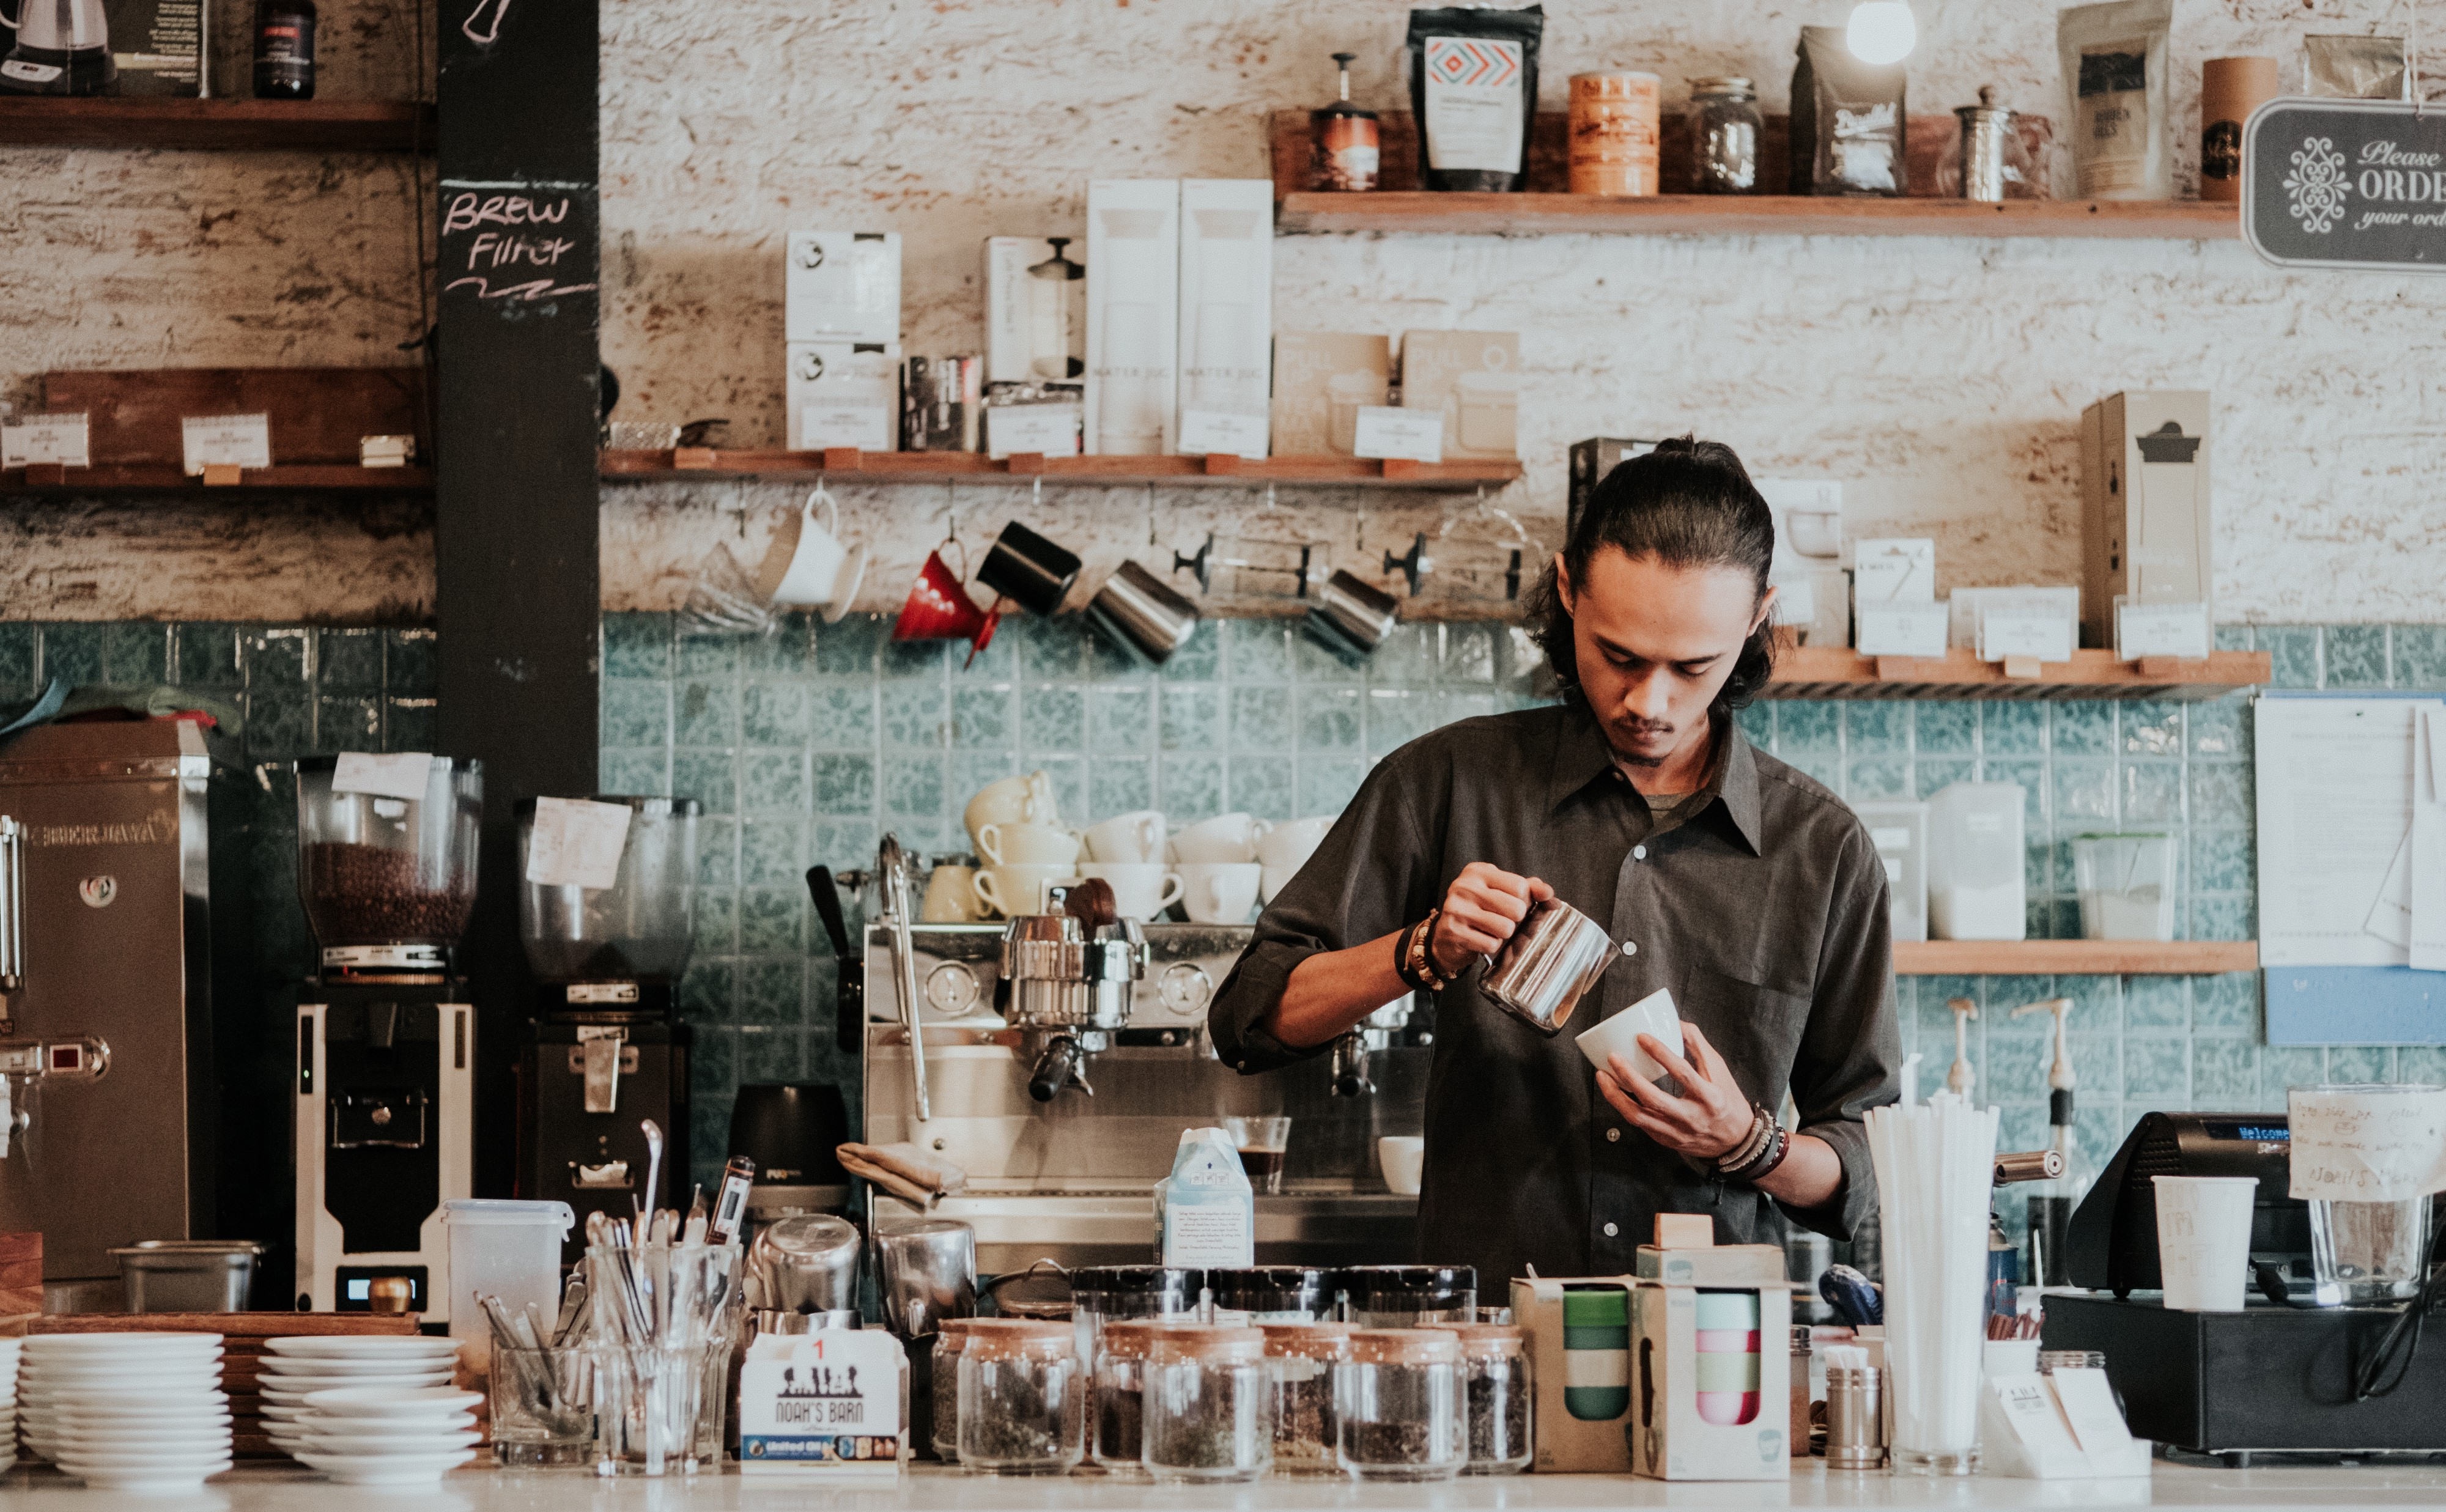 A barista makes a luxury coffee in a modern coffee shop